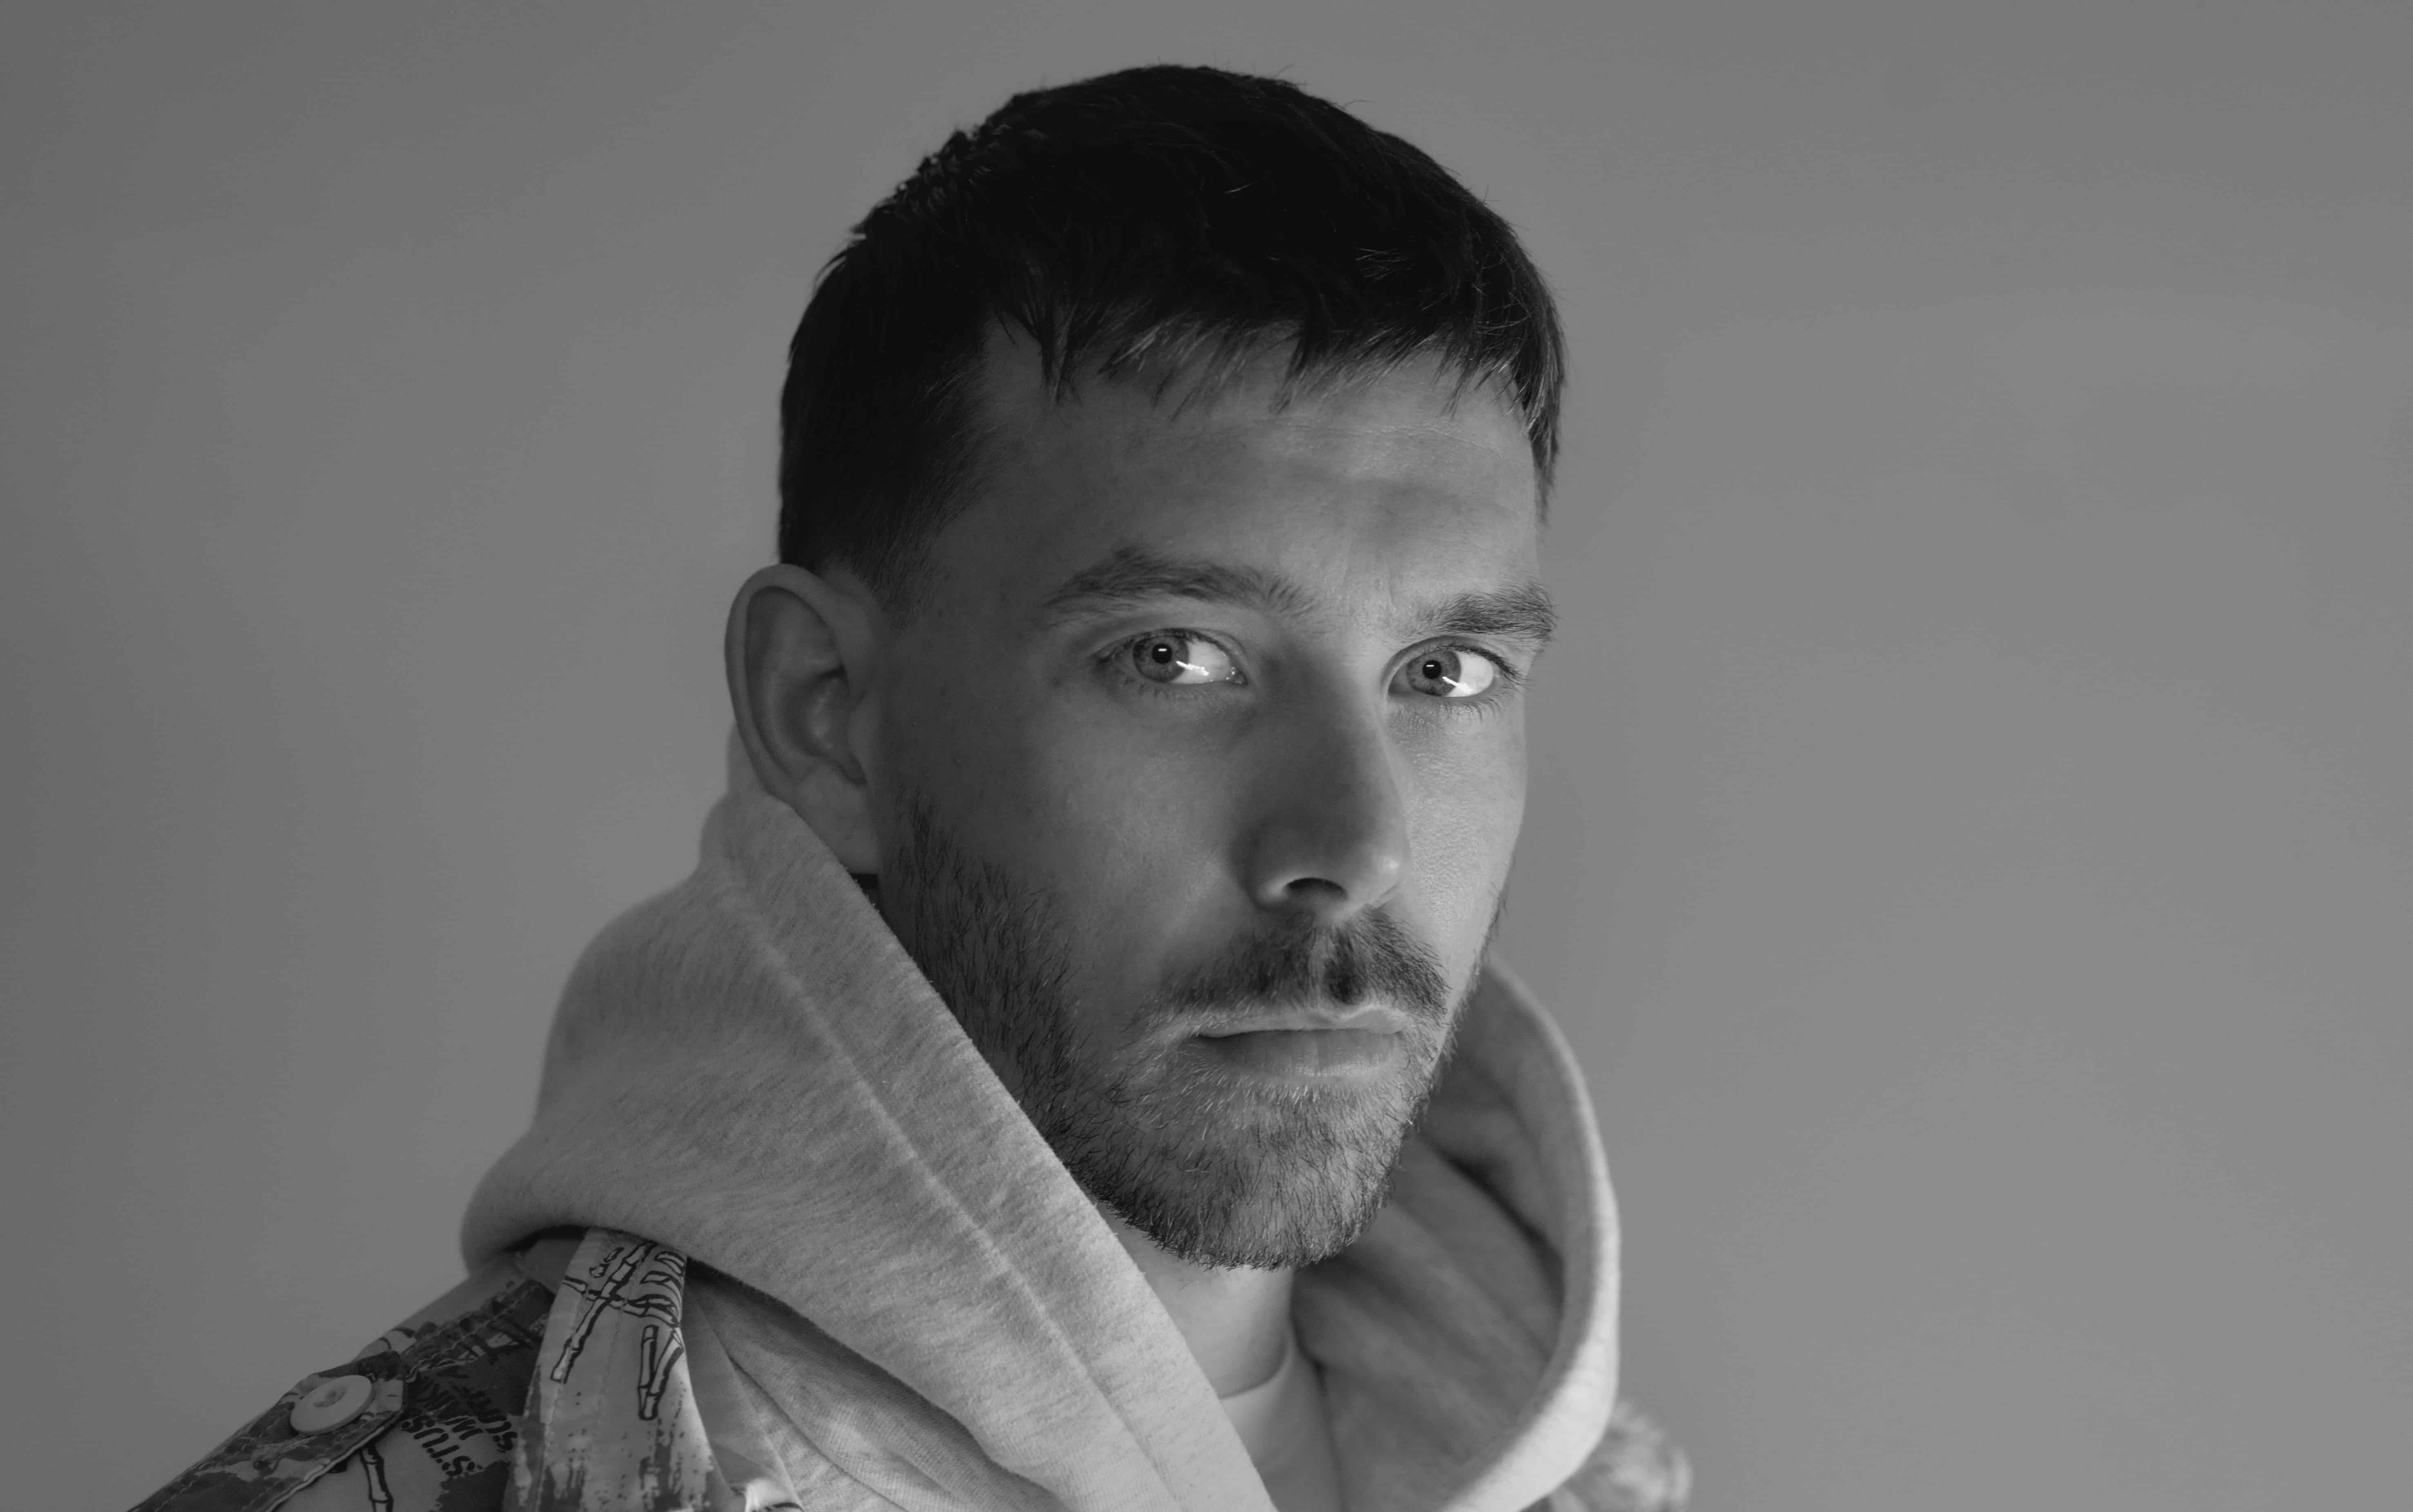 Gold/Shade – Exclusive Interview With The Up And Coming Dutch Producer